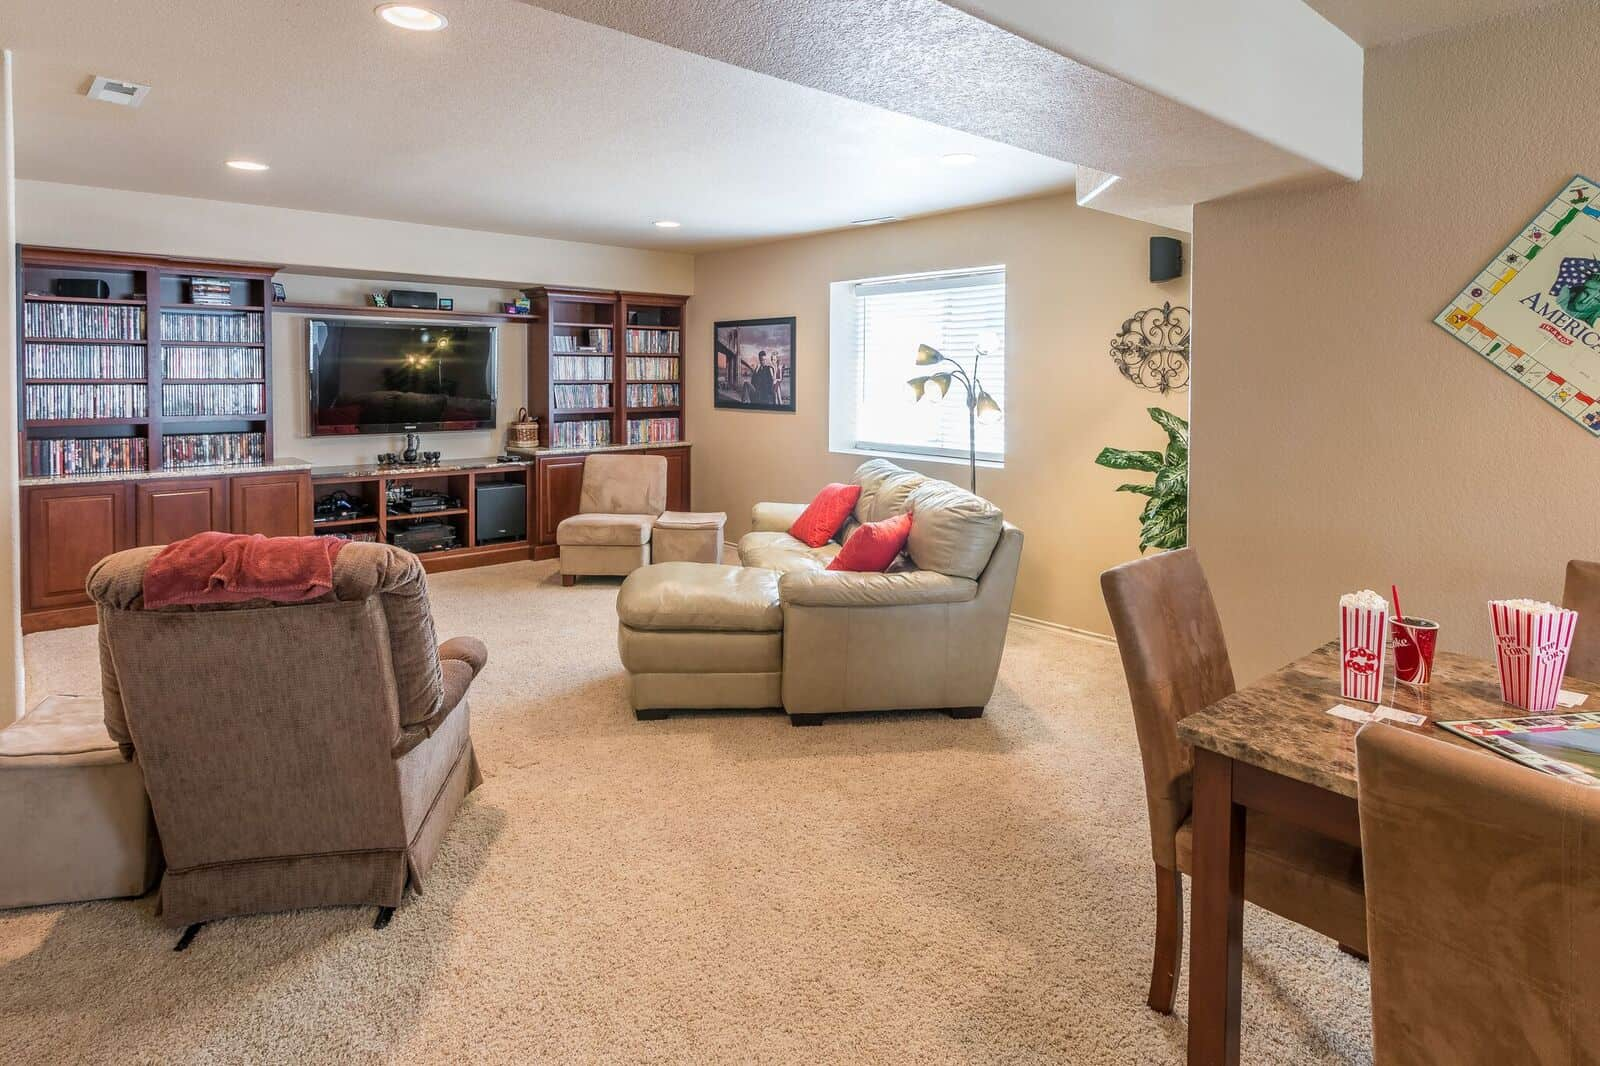 Basement Recreation Room w/Built-In Cabinetry